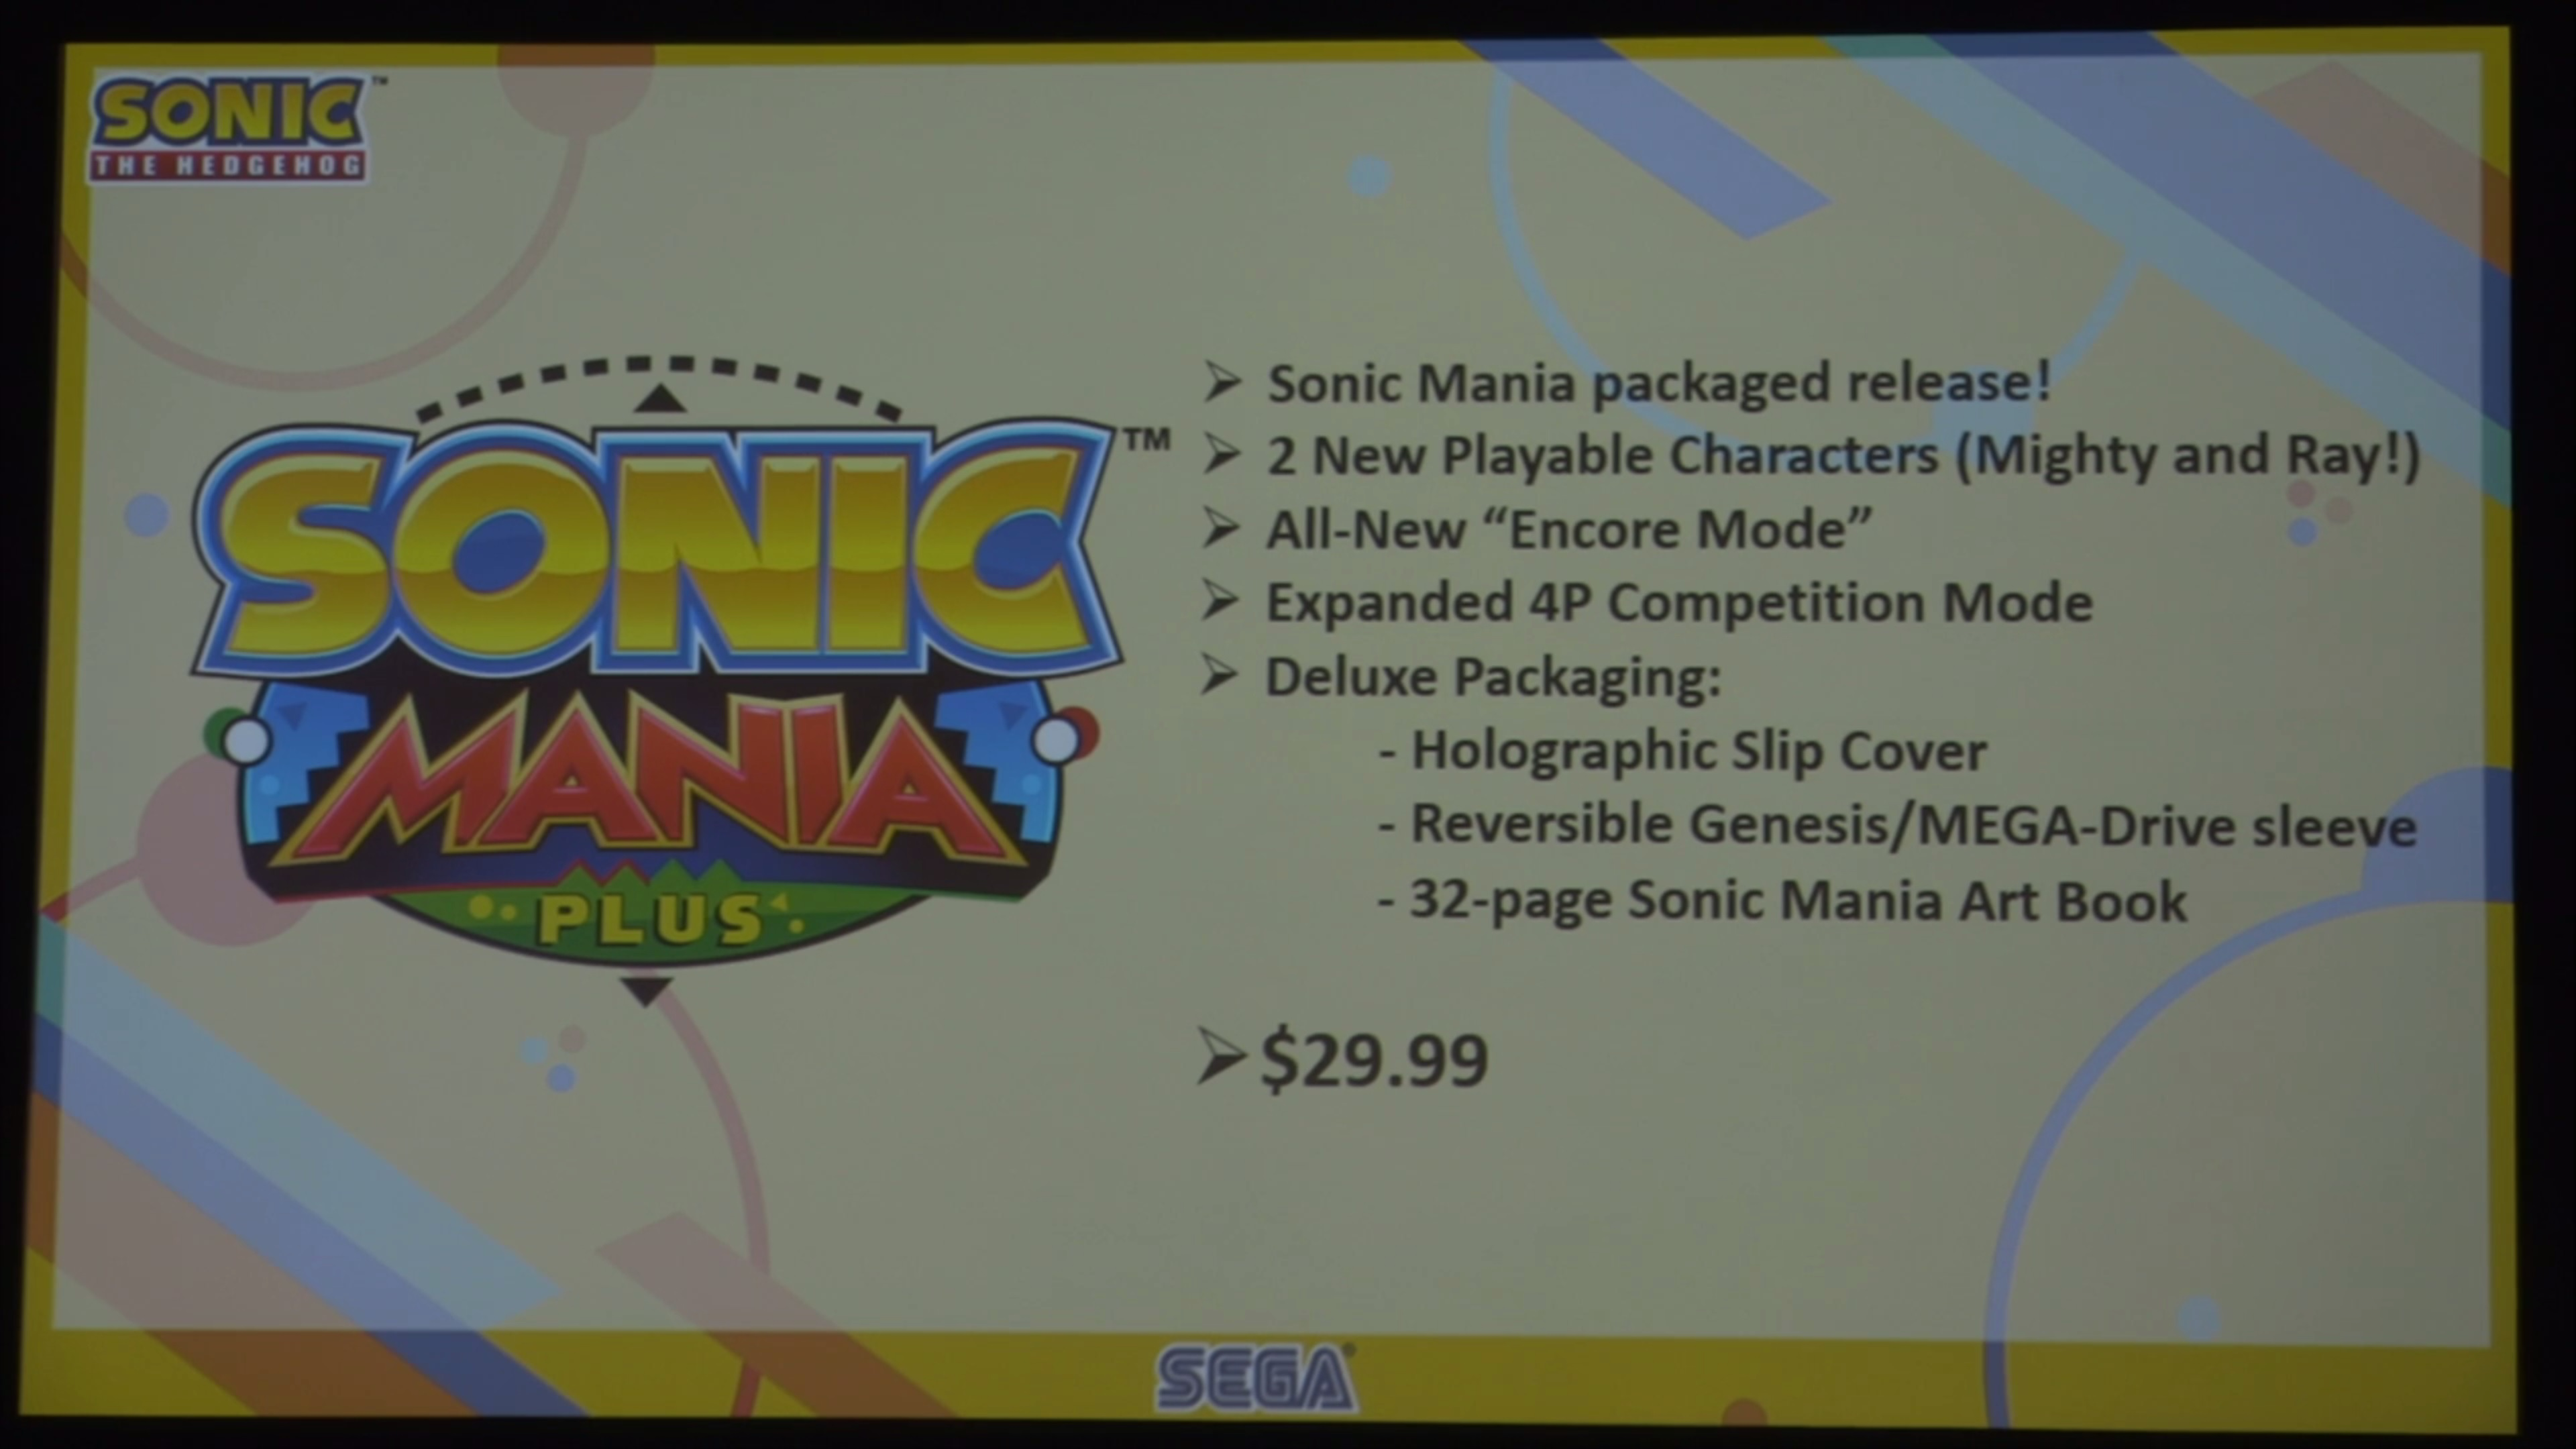 Sonic Mania coming to retail as Sonic Mania Plus, new